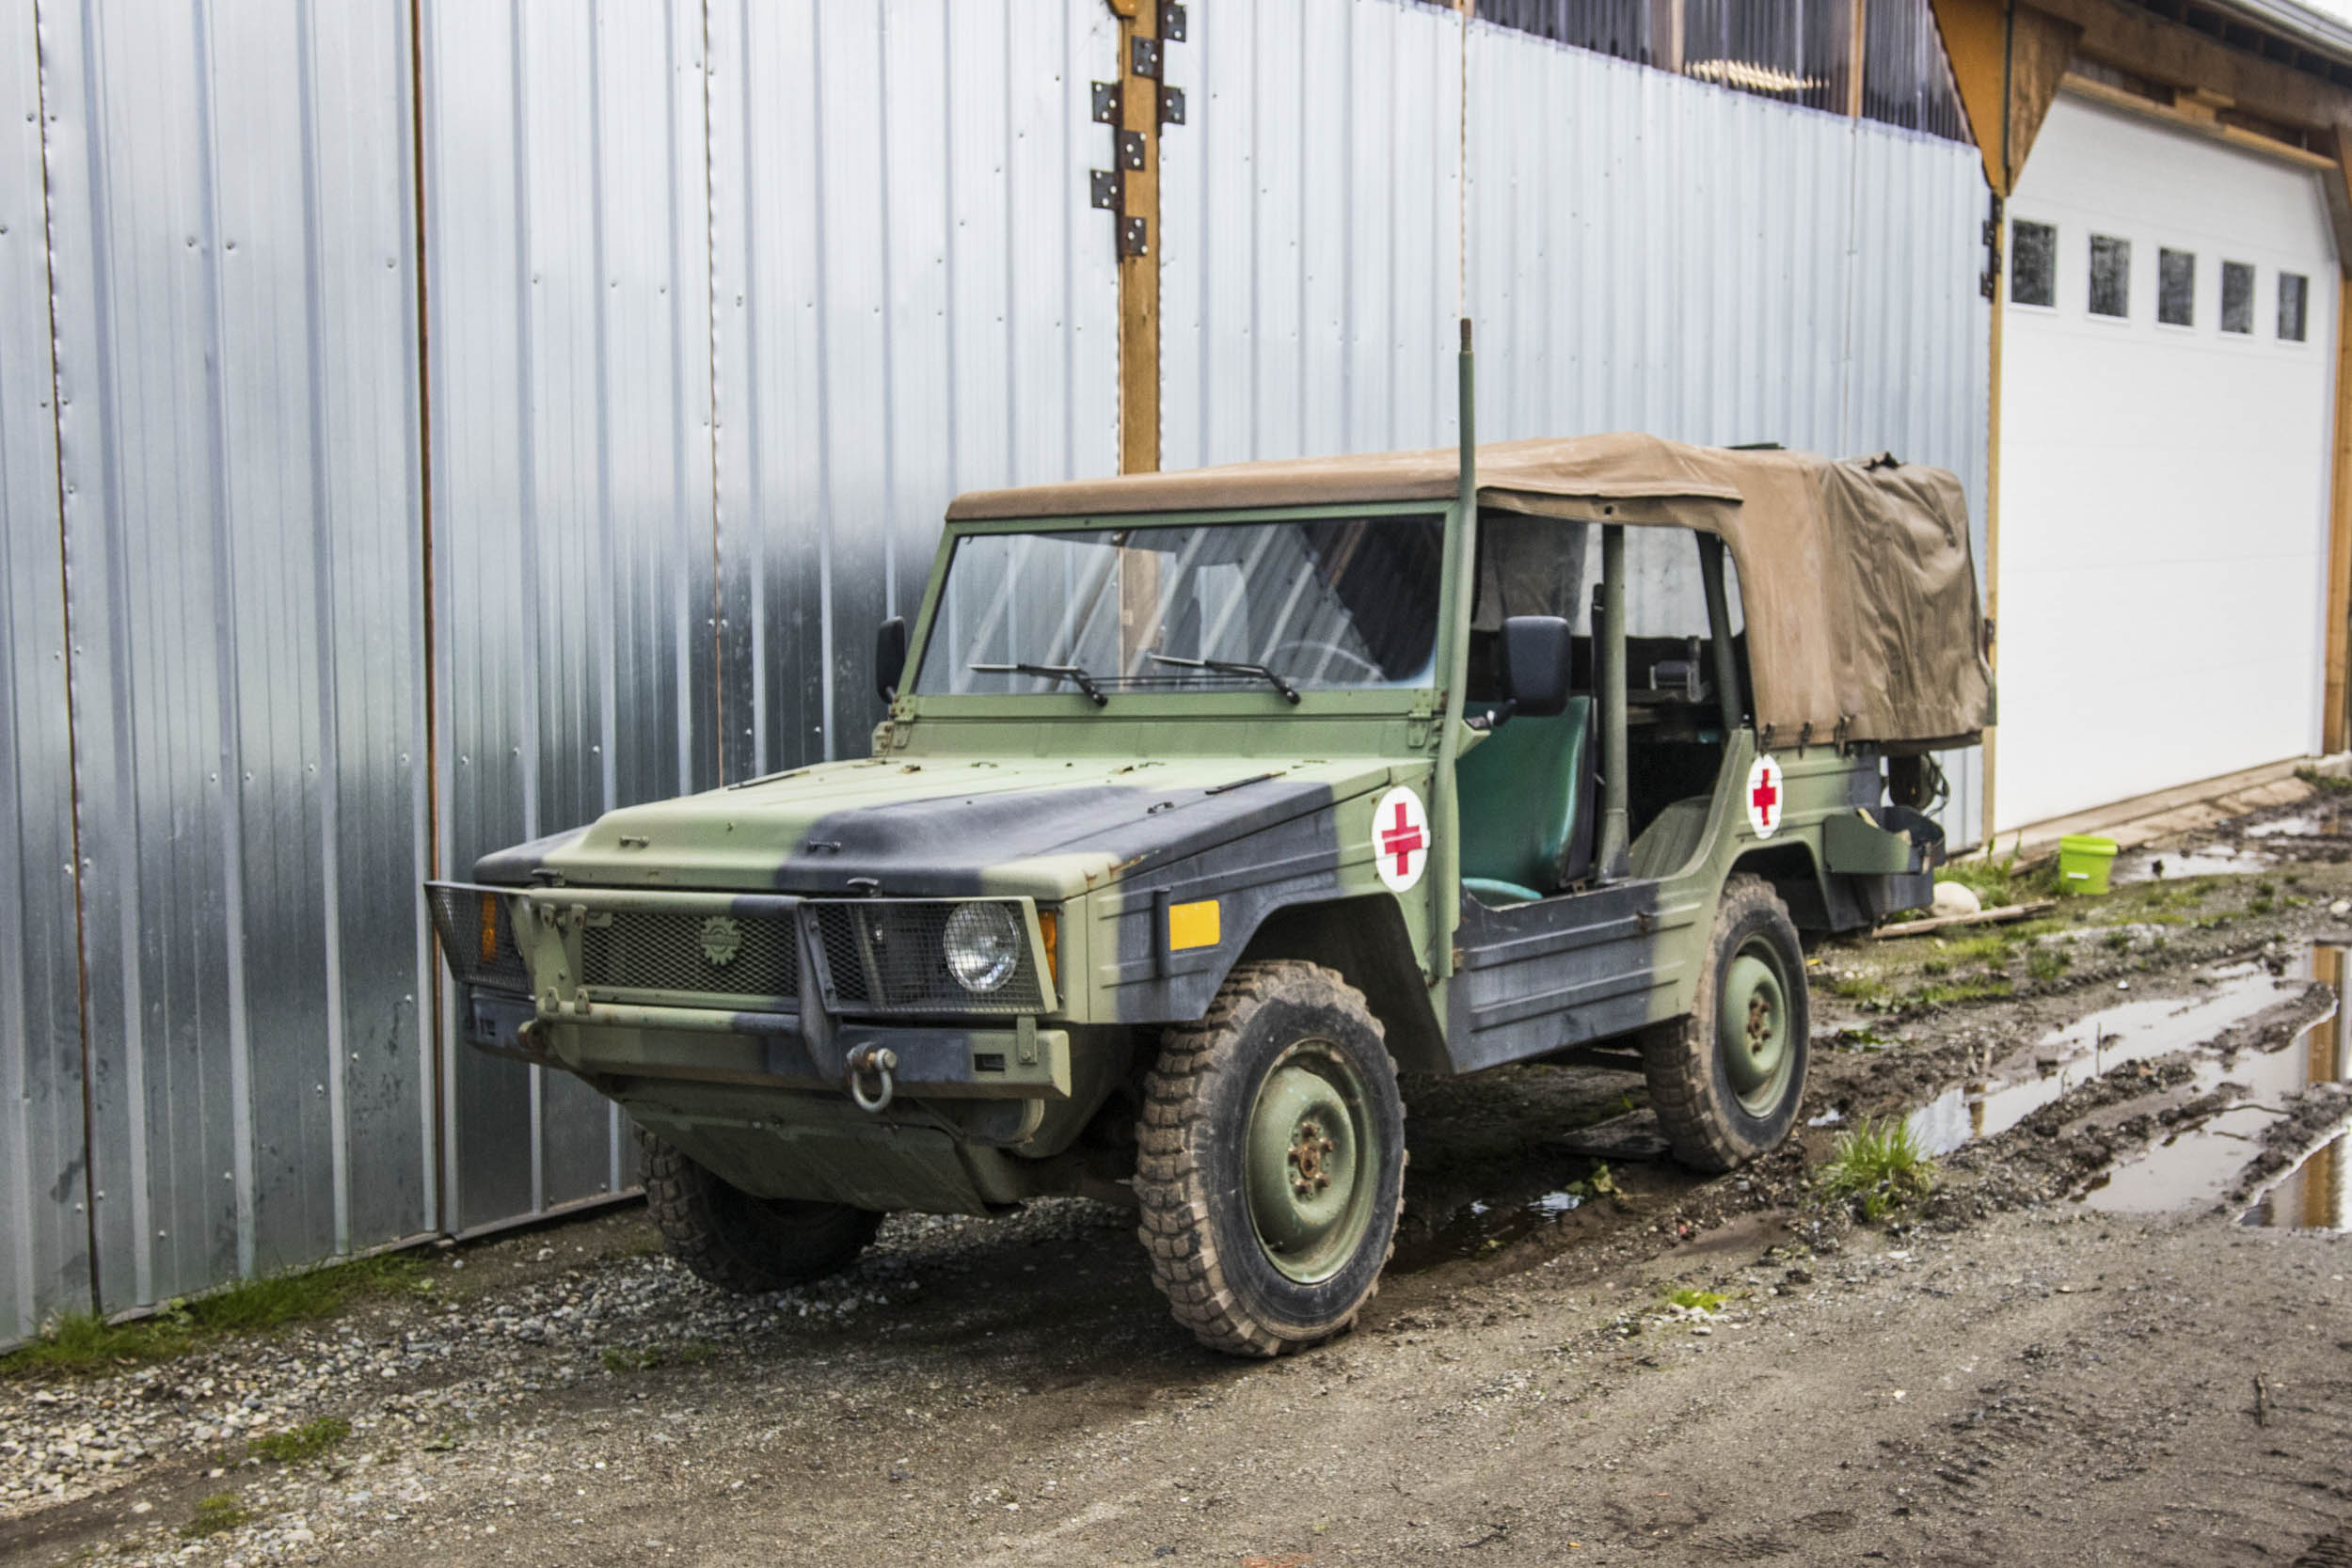 Only a handful of ambulance-spec Iltis were made for the Canadian military by Bombardier. This one is on its way to a museum in Victoria, B.C.